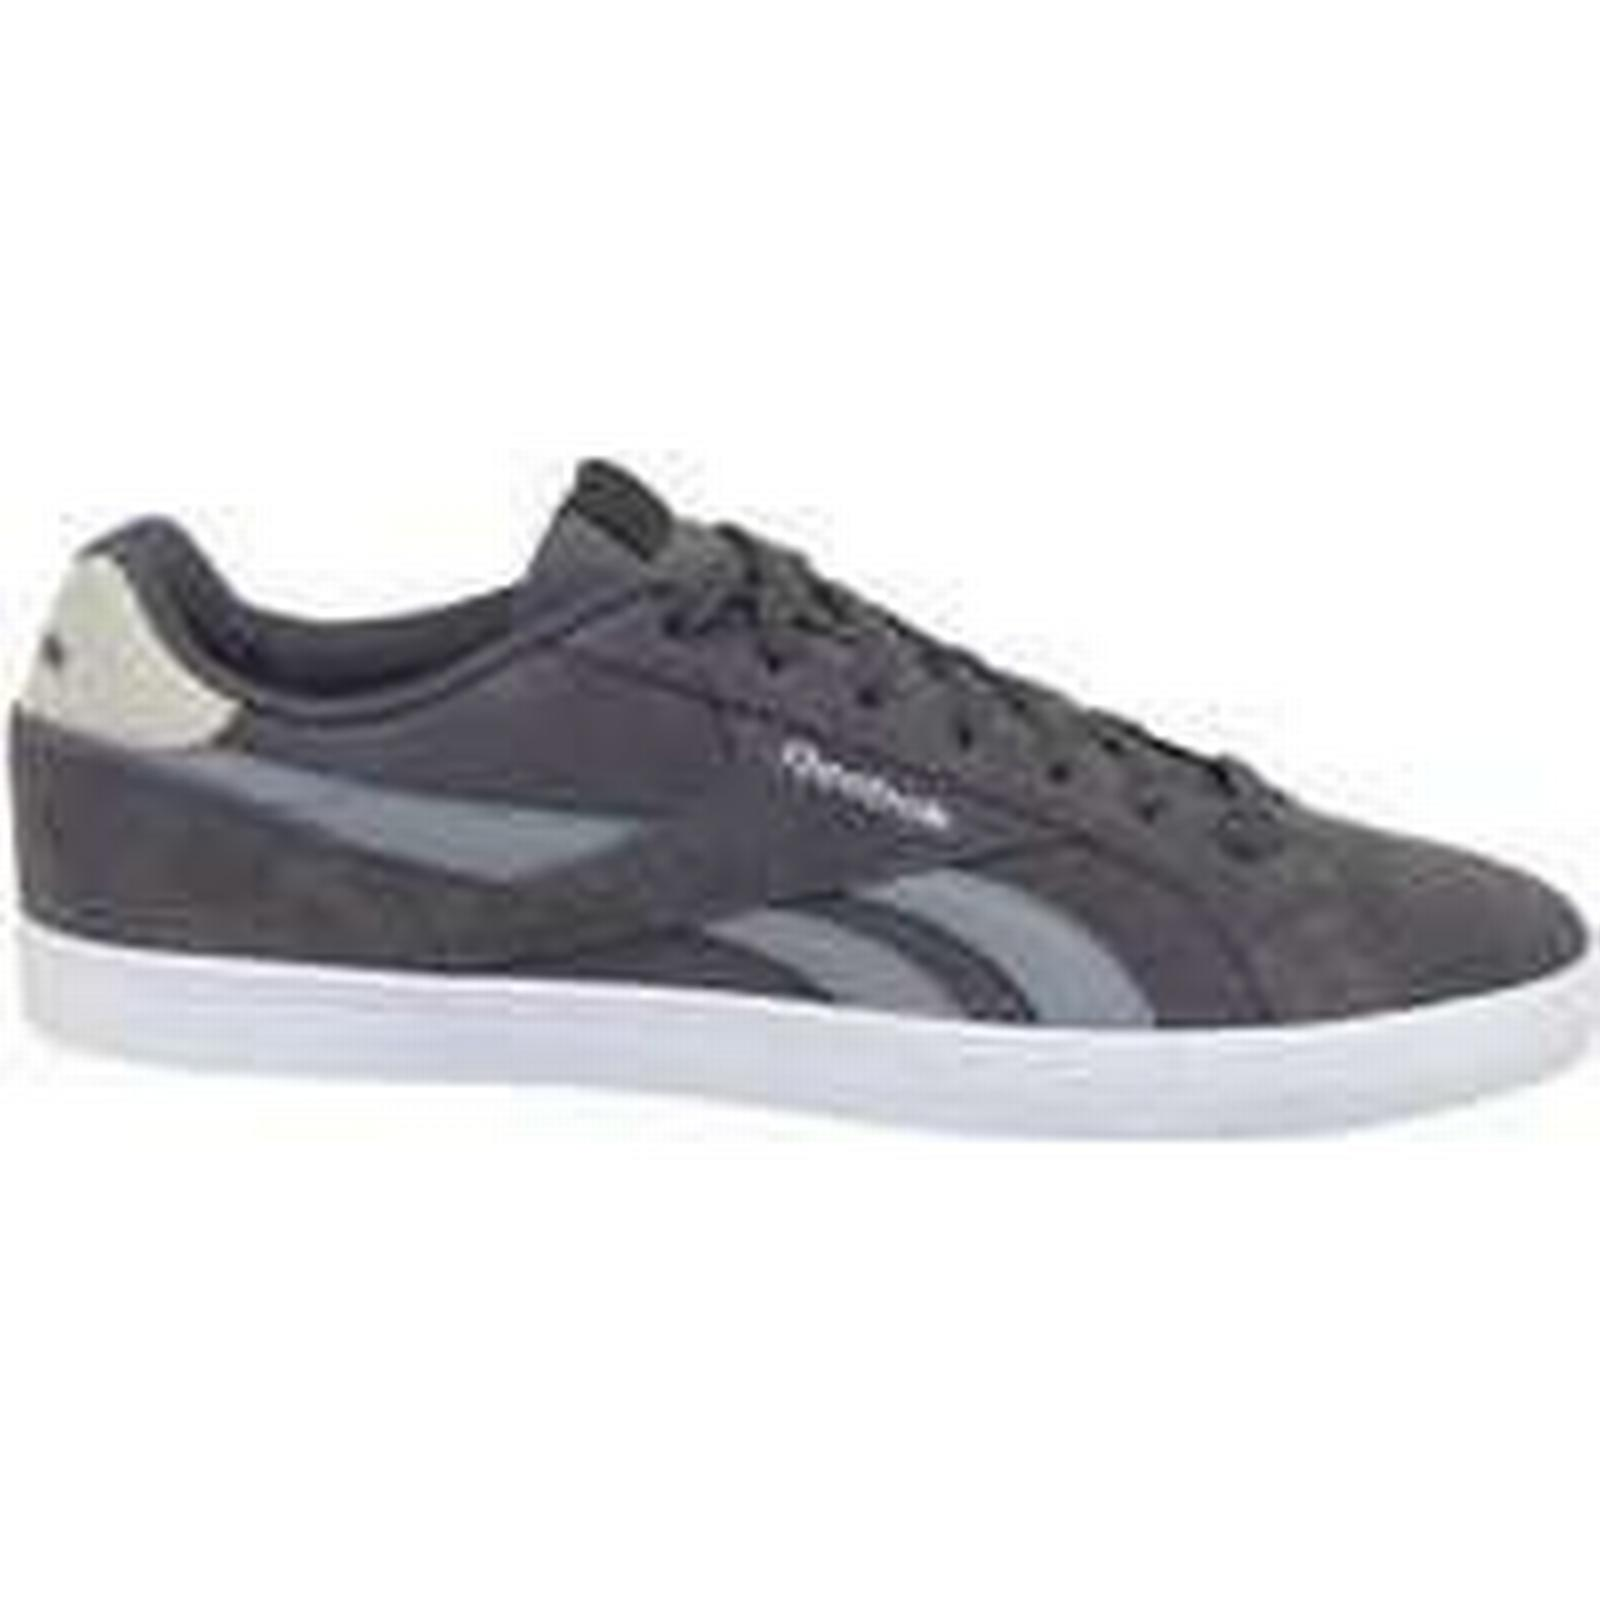 Spartoo.co.uk Reebok Sport Shoes Royal Complete 2LS men's Shoes Sport (Trainers) in Grey c4a550